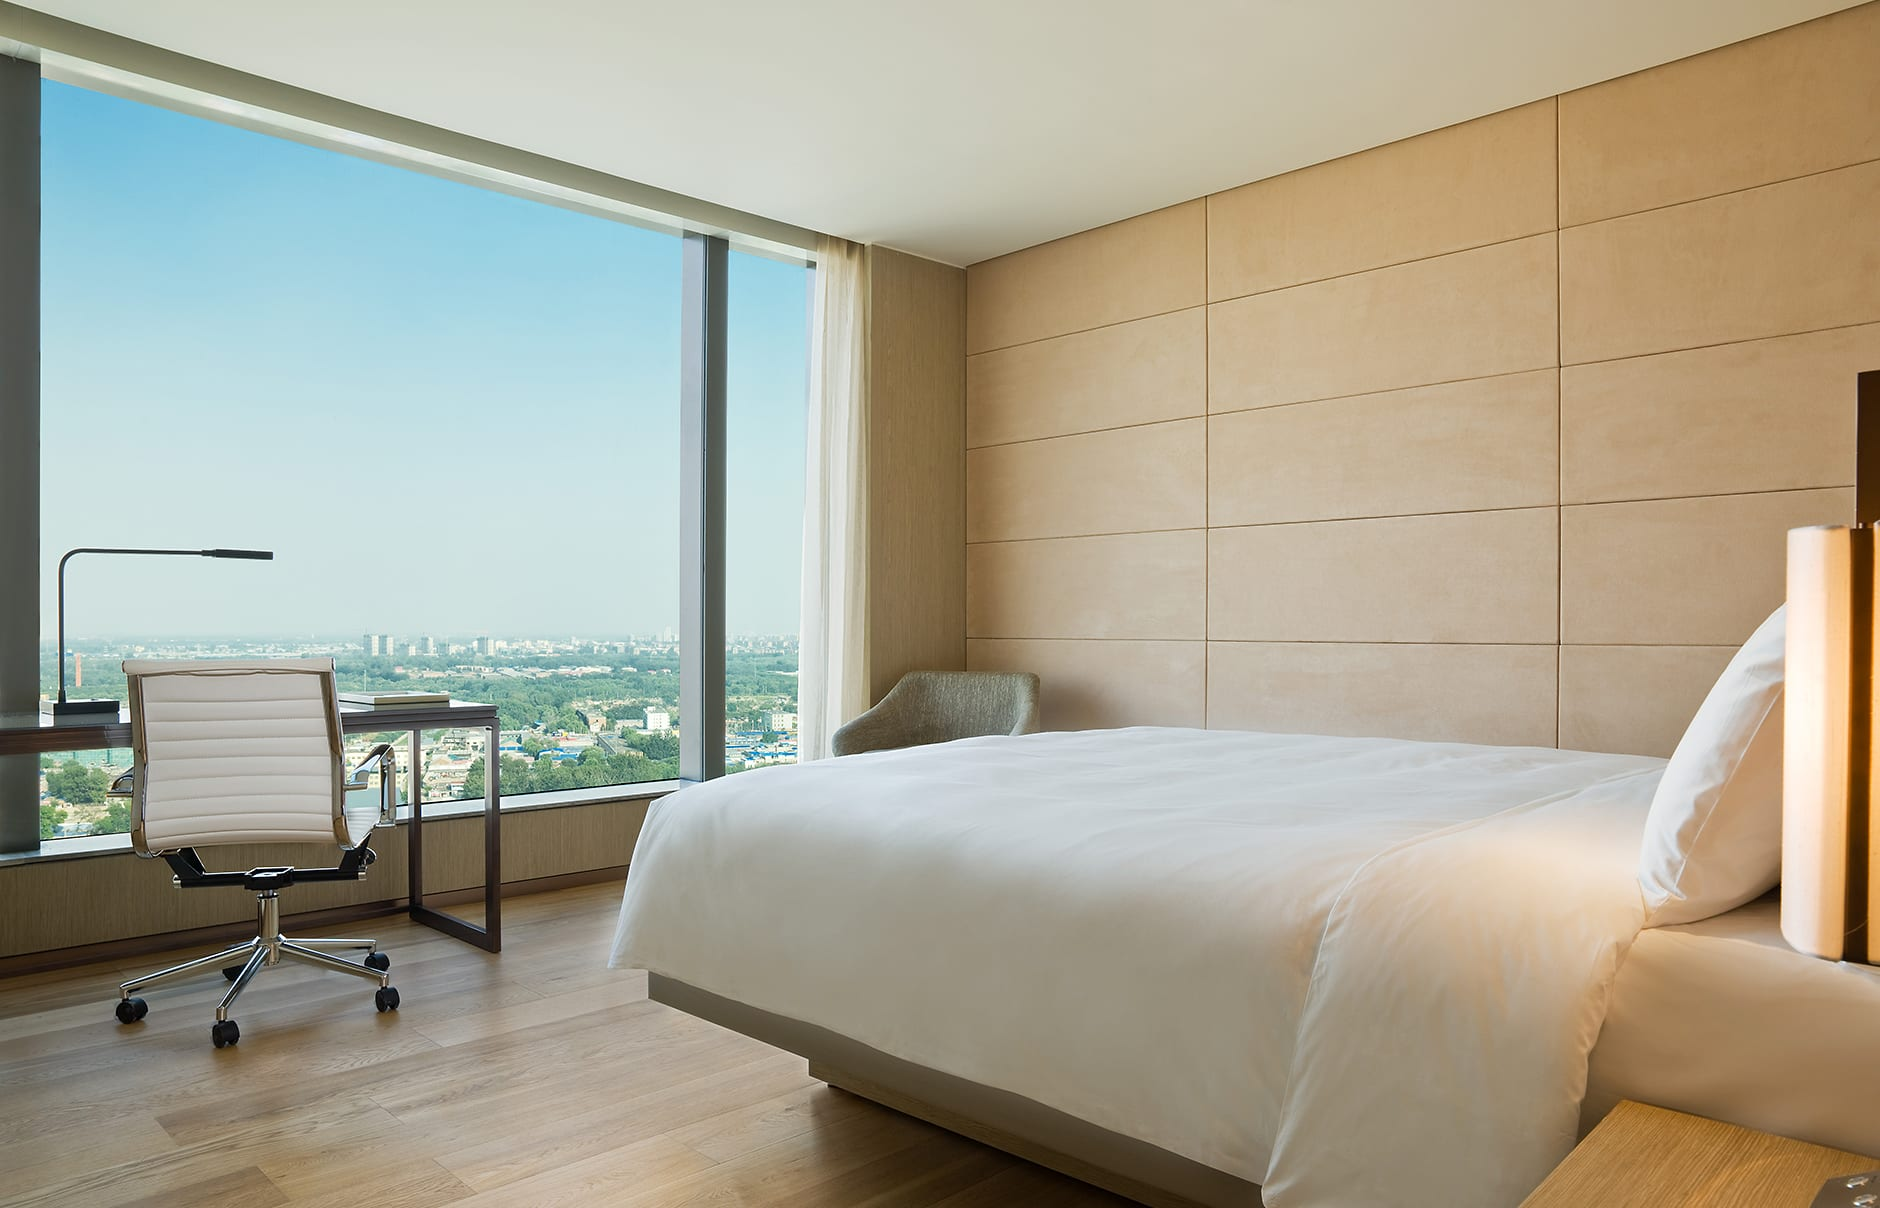 Park View Room. EAST Beijing, China. Hotel Review by TravelPlusStyle. Photo © Swire Hotels